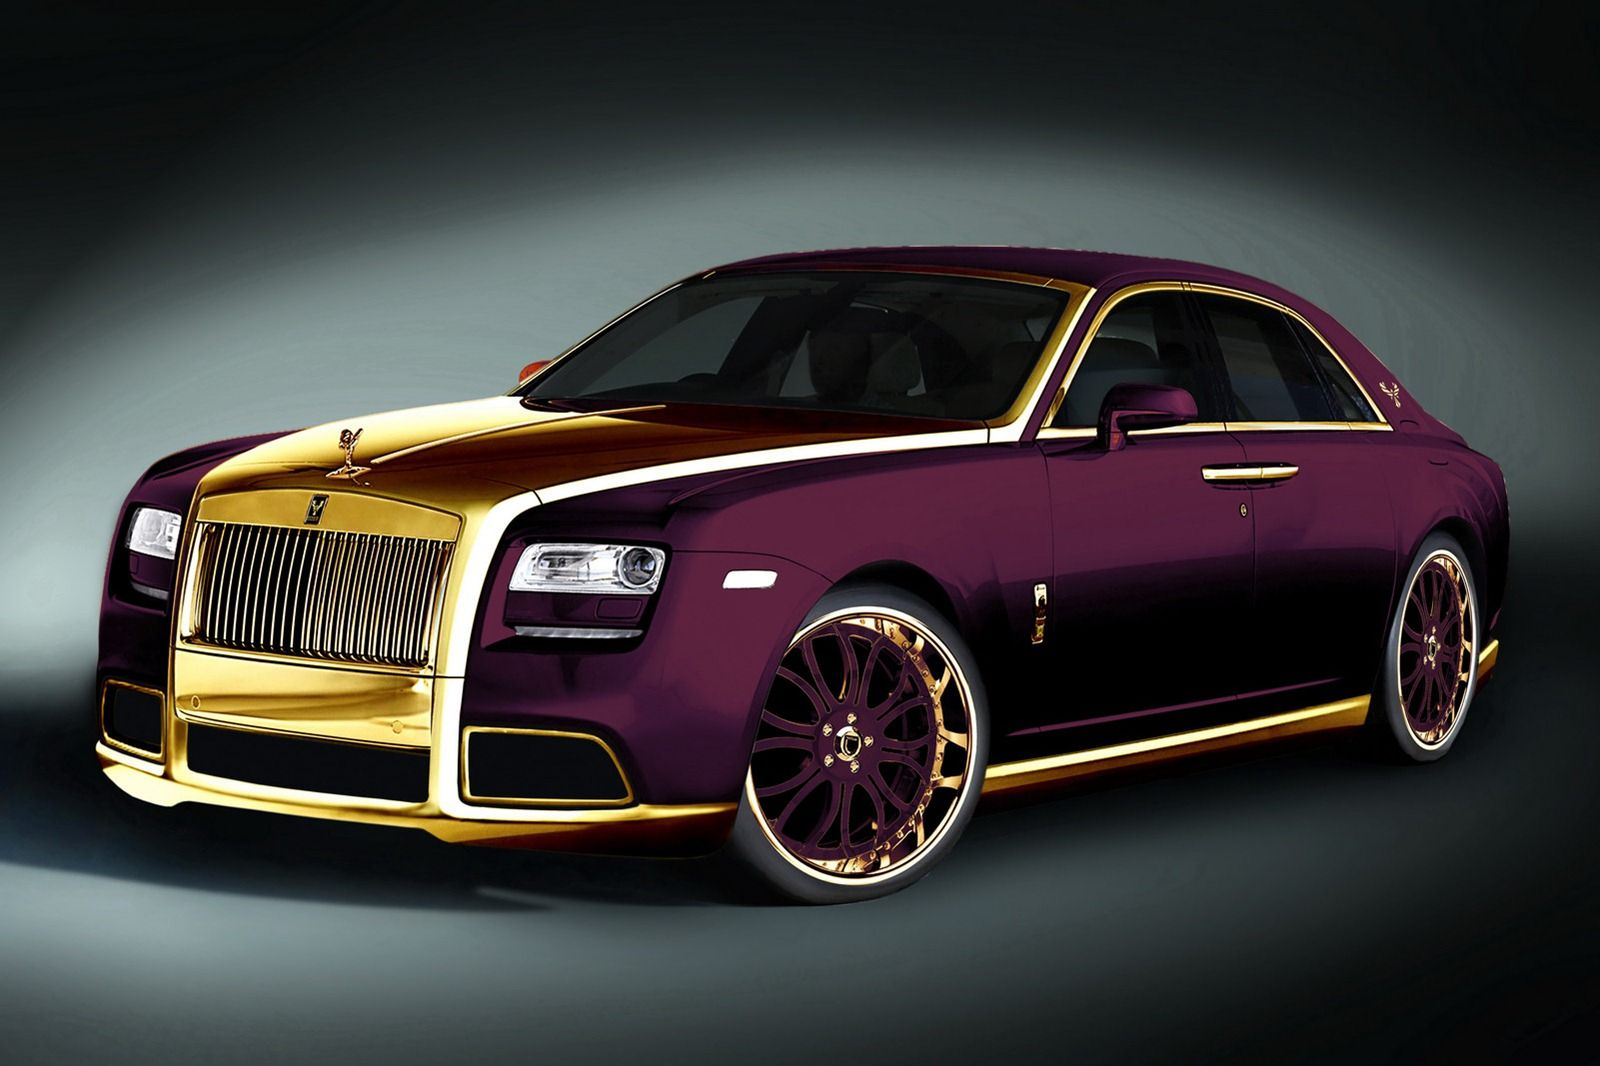 Get This Car Pictures 2015 Rolls Royce Ghost Paris Purple In Gallery